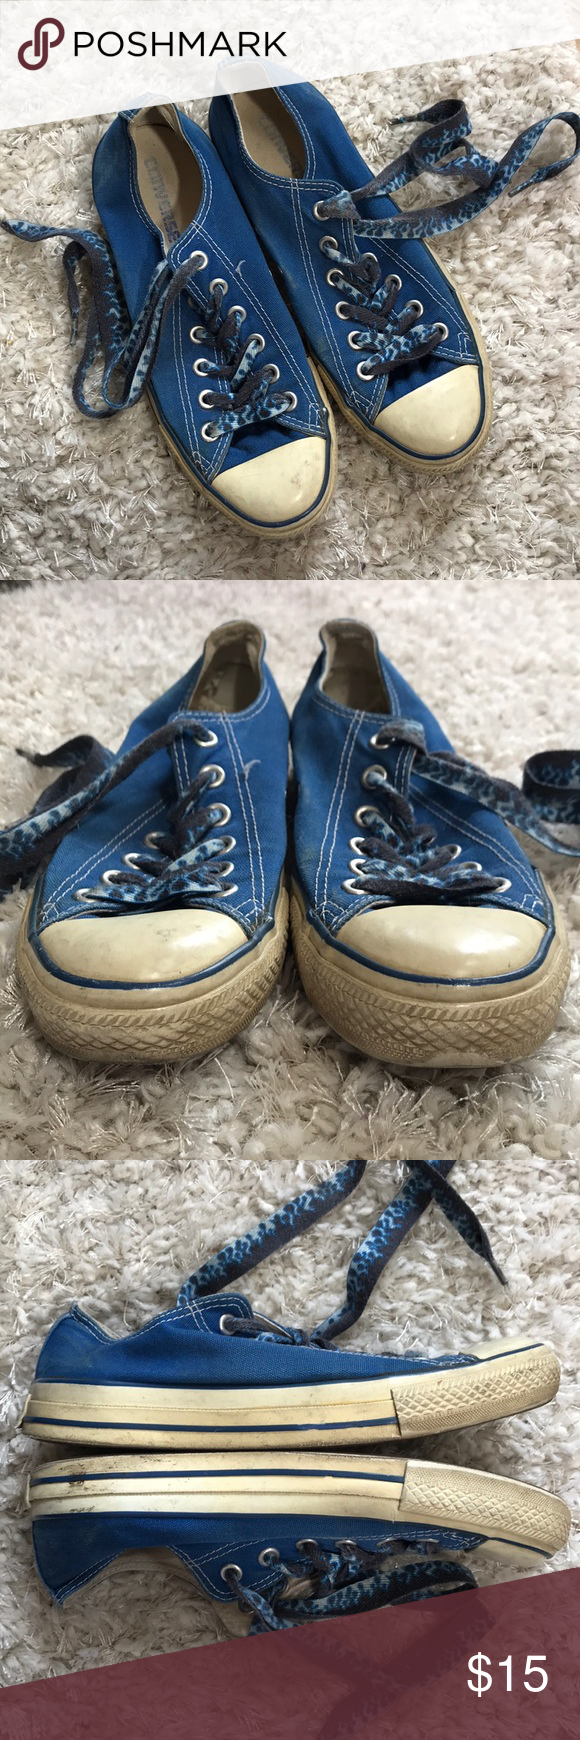 0ee3d70d4bf7 Converse blue with blue flame shoe laces used Chuck Taylor converse used.  Has discoloration from time and wear. Converse Shoes Sneakers